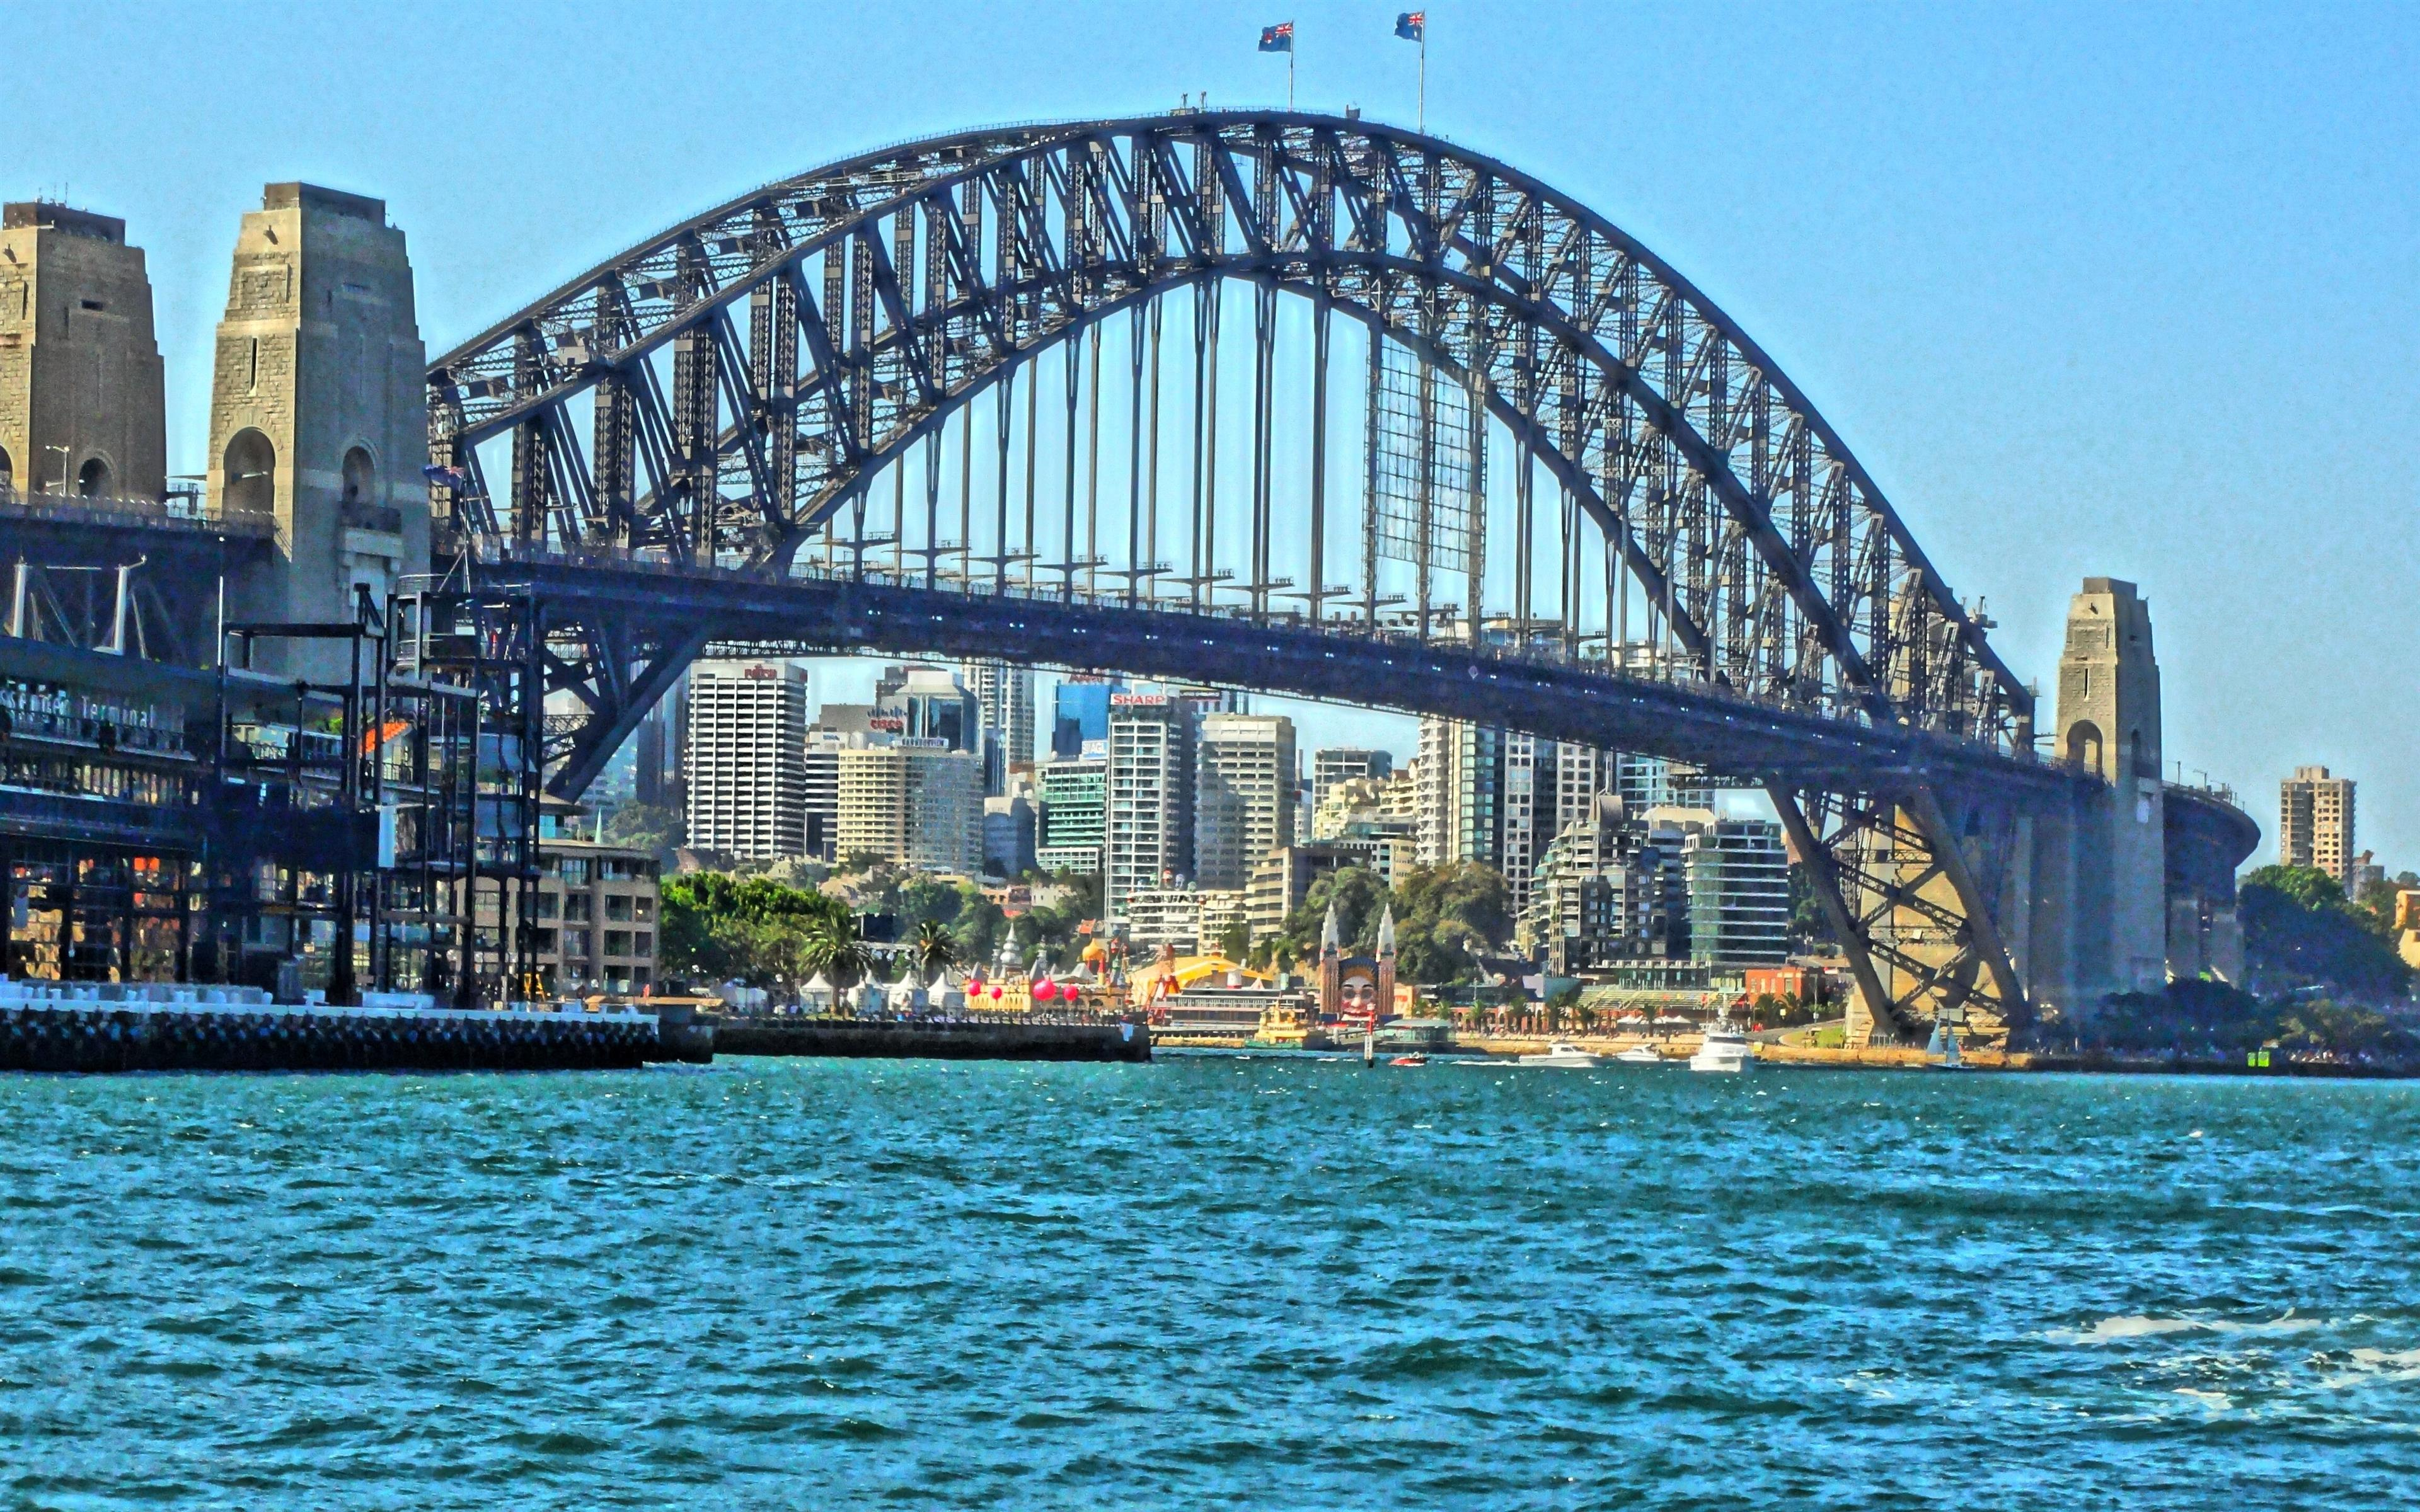 3840x2400 Beautiful Sydney Harbour Bridge in Australia HD Wallpapers